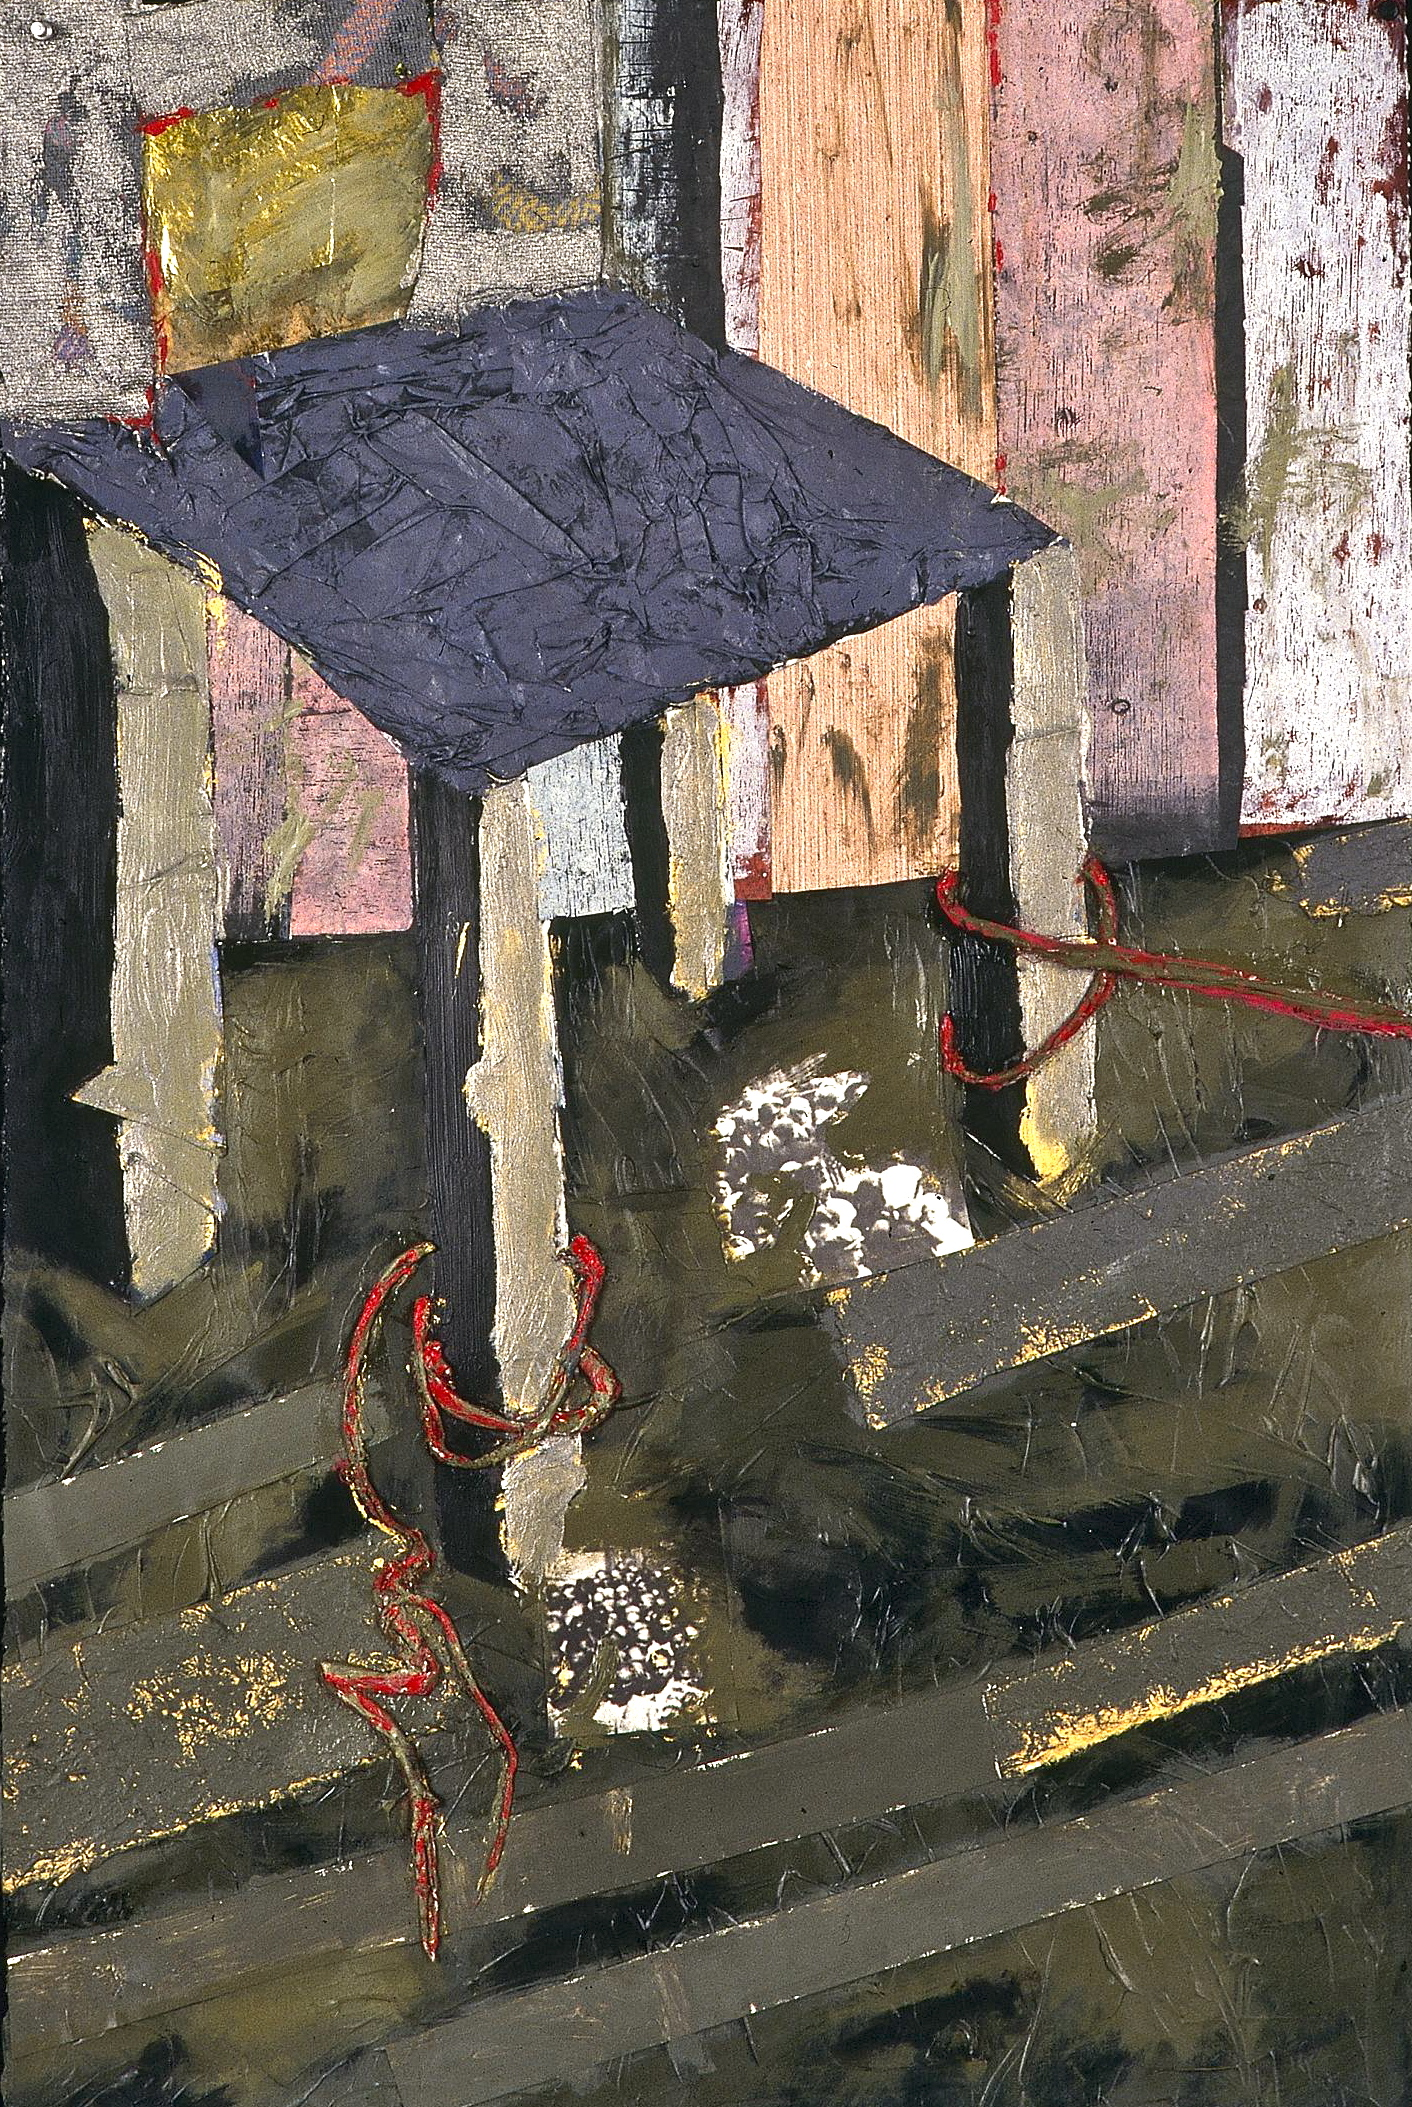 """""""Waiting Room III,"""" Susan Hoffman Fishman, Acrylic and Mixed Media on Paper, 1992, Collection of the William Benton Museum of Art, University of Connecticut, Storrs, CT."""